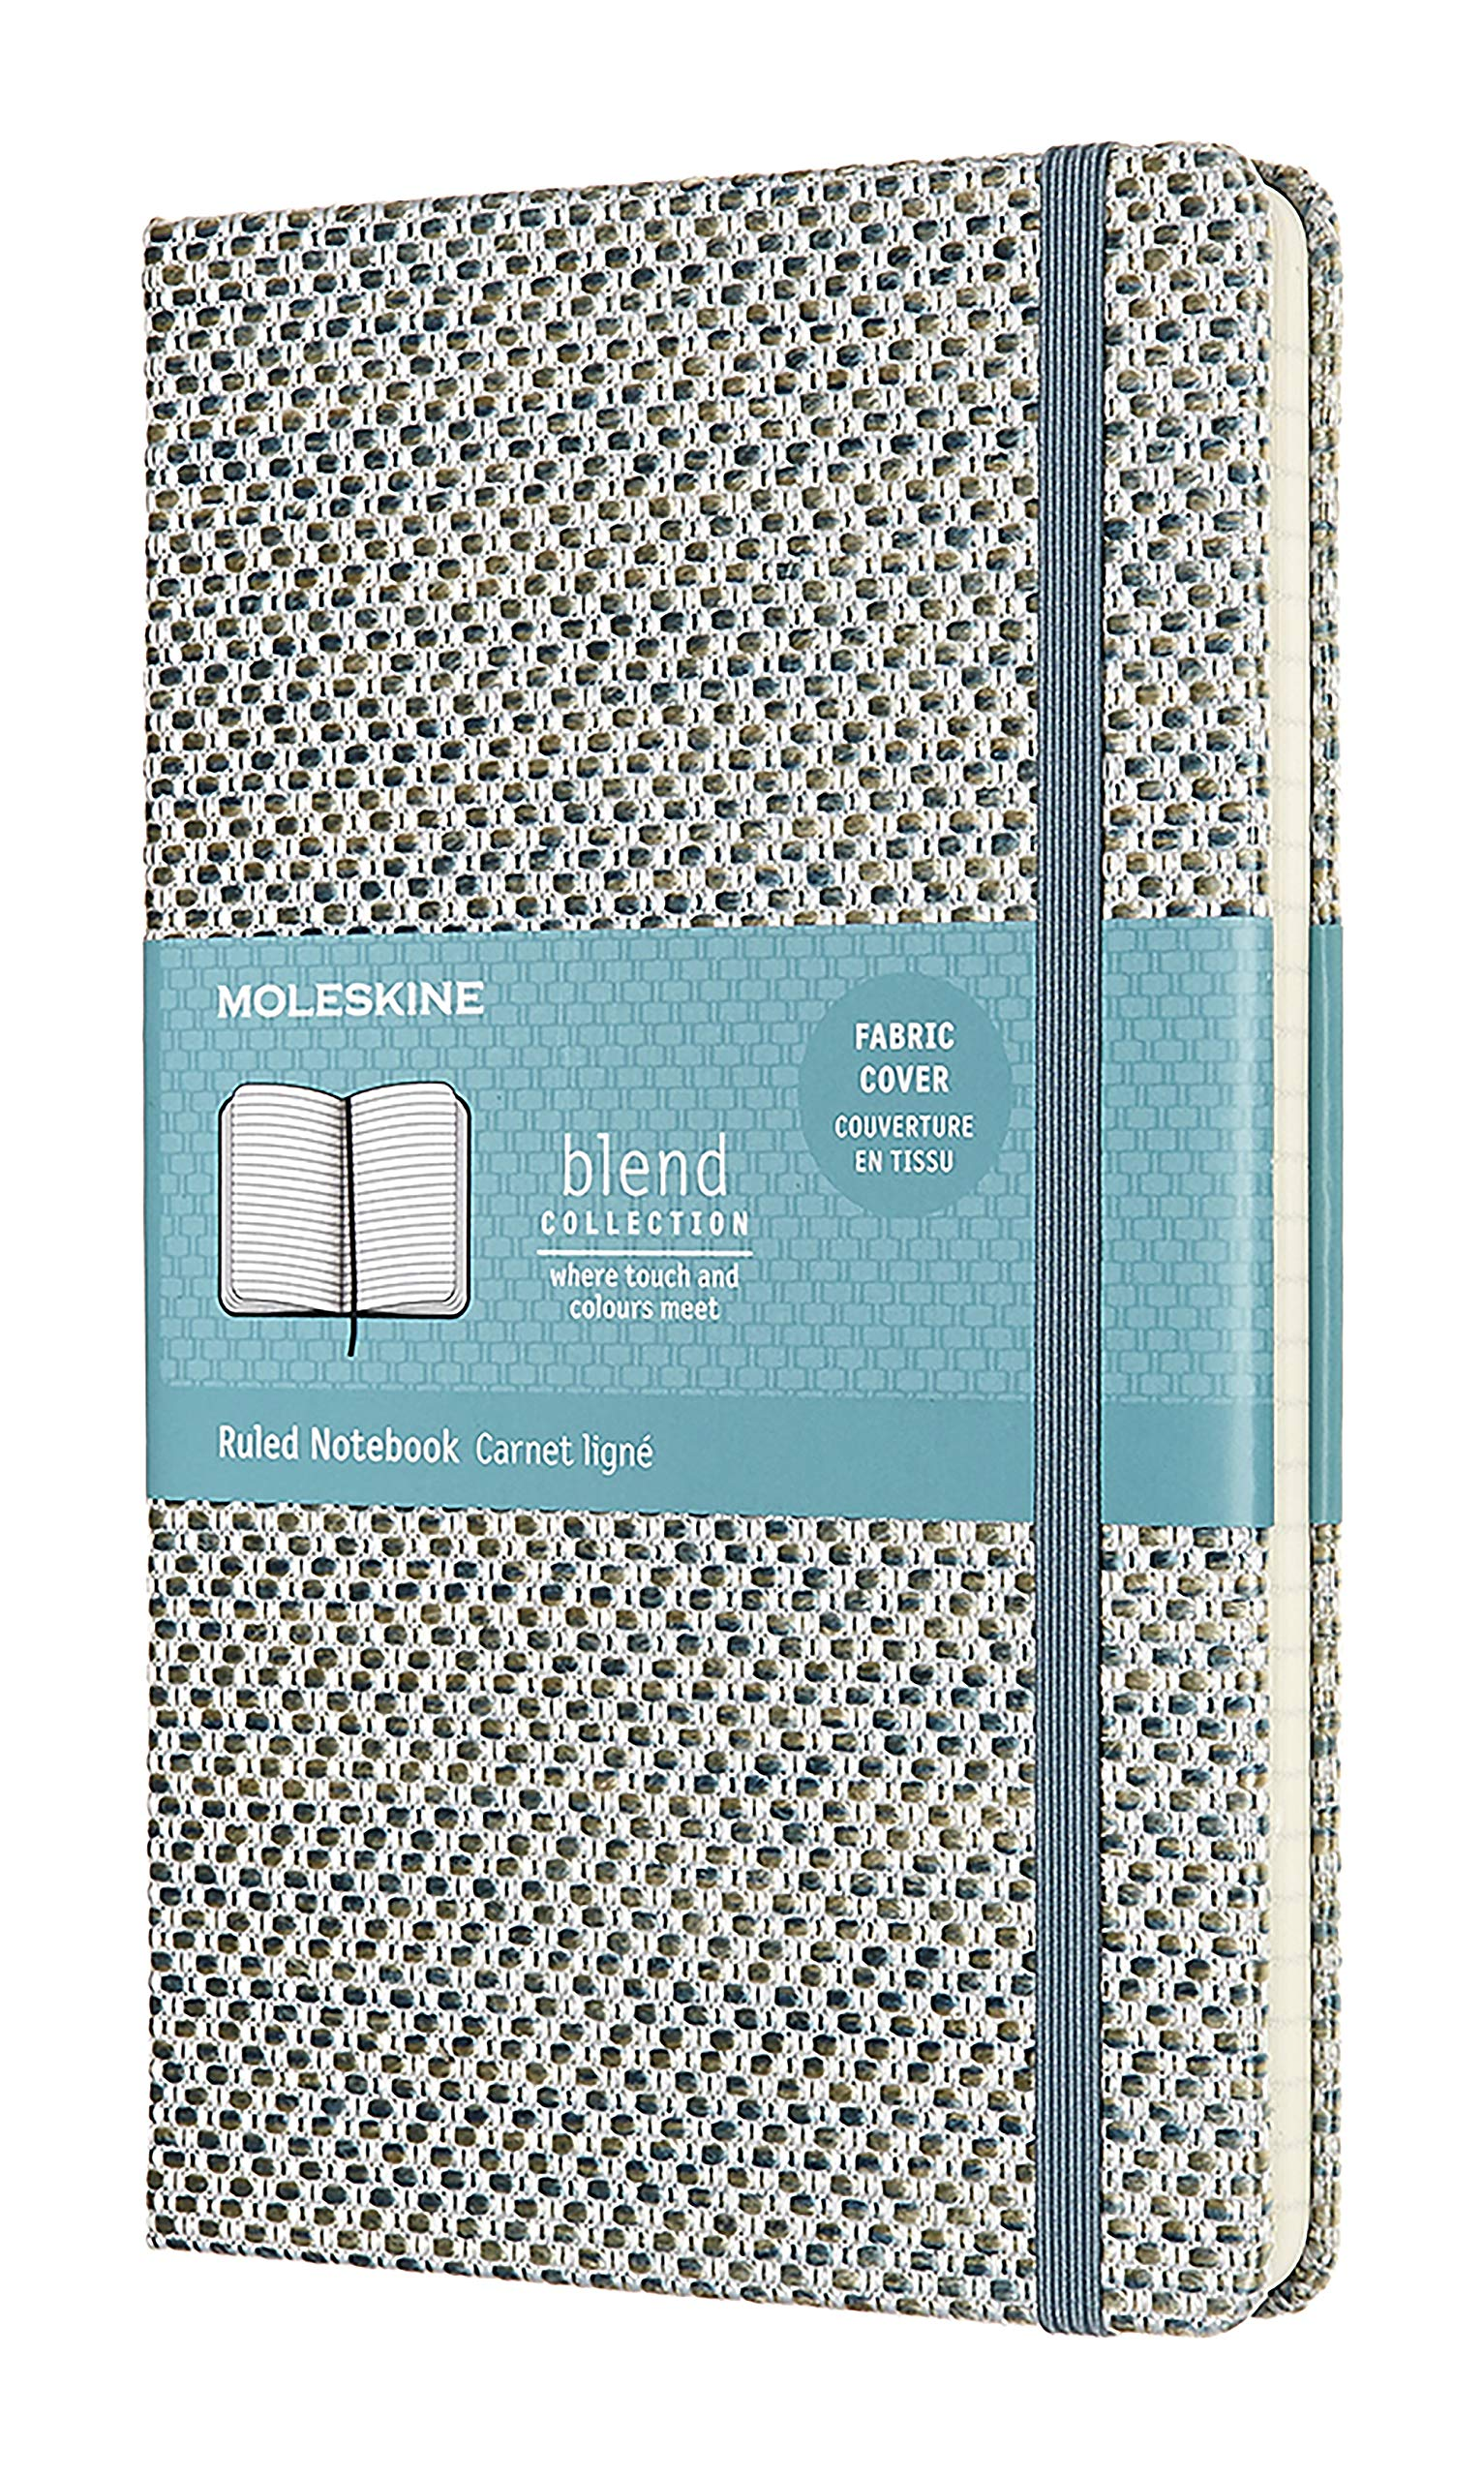 Moleskine Limited Collection Blend Textile Notebook, Hard Cover, Large (5'' x 8.25'') Ruled/Lined, Blue